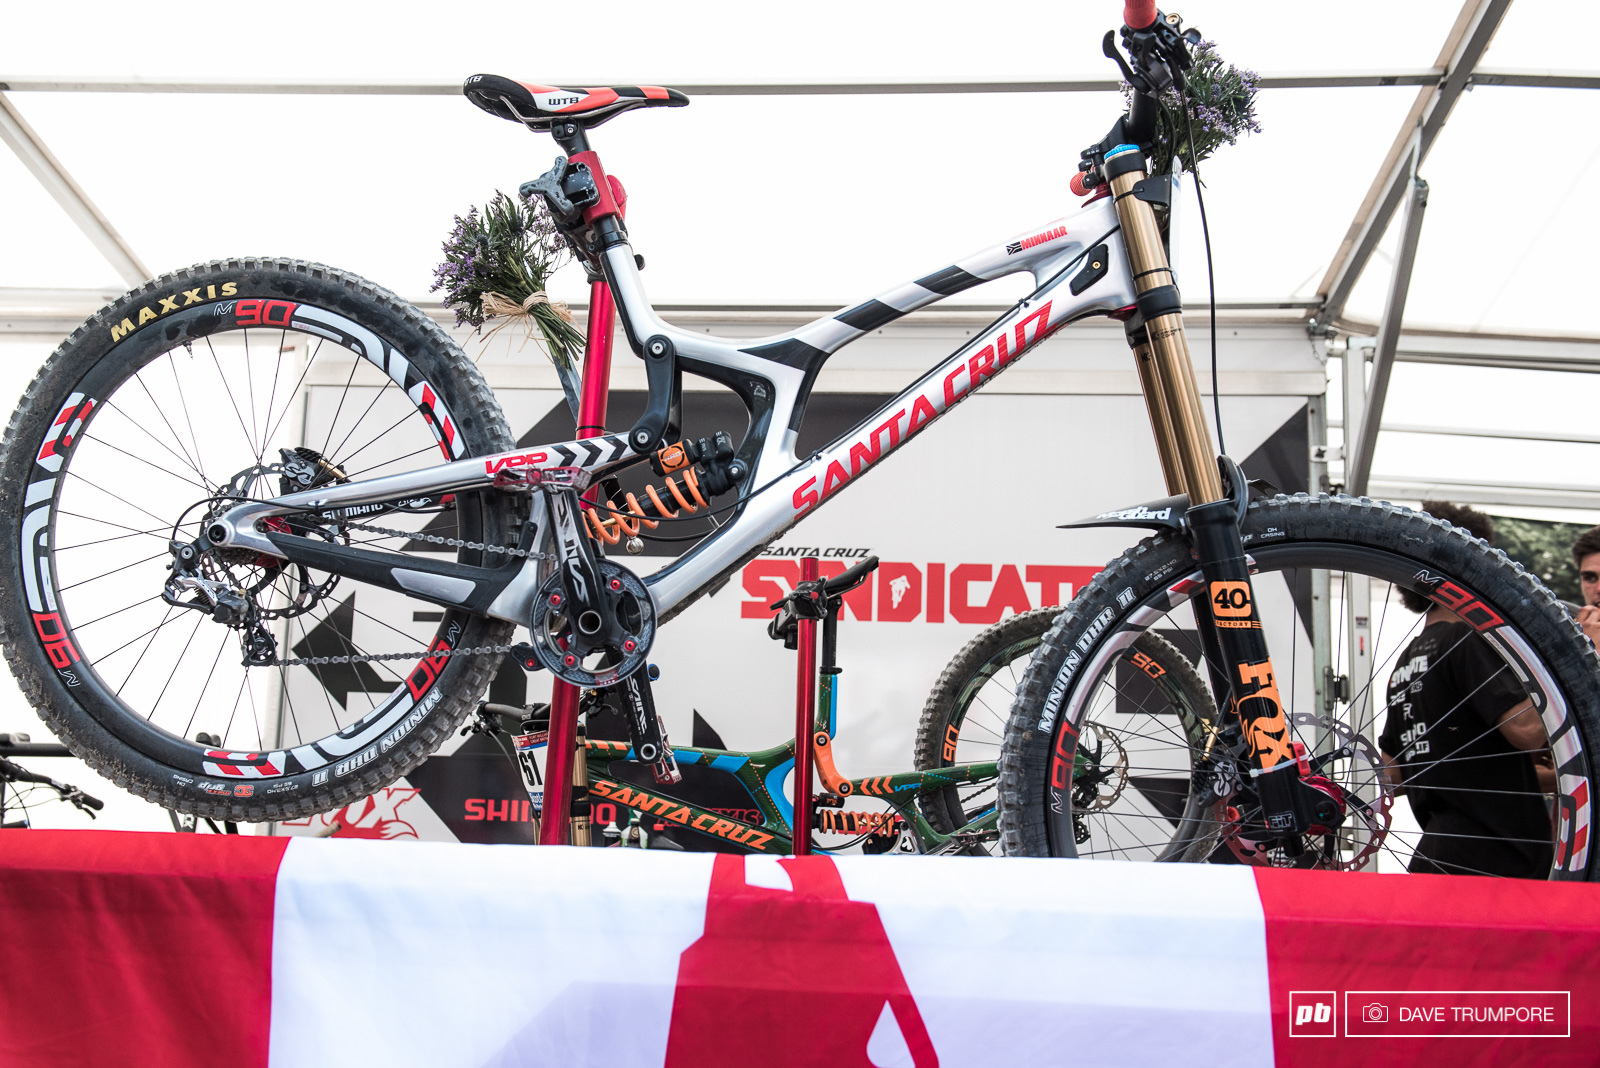 Just hanging in the stand Greg Minnaar s V-10 looks fast.